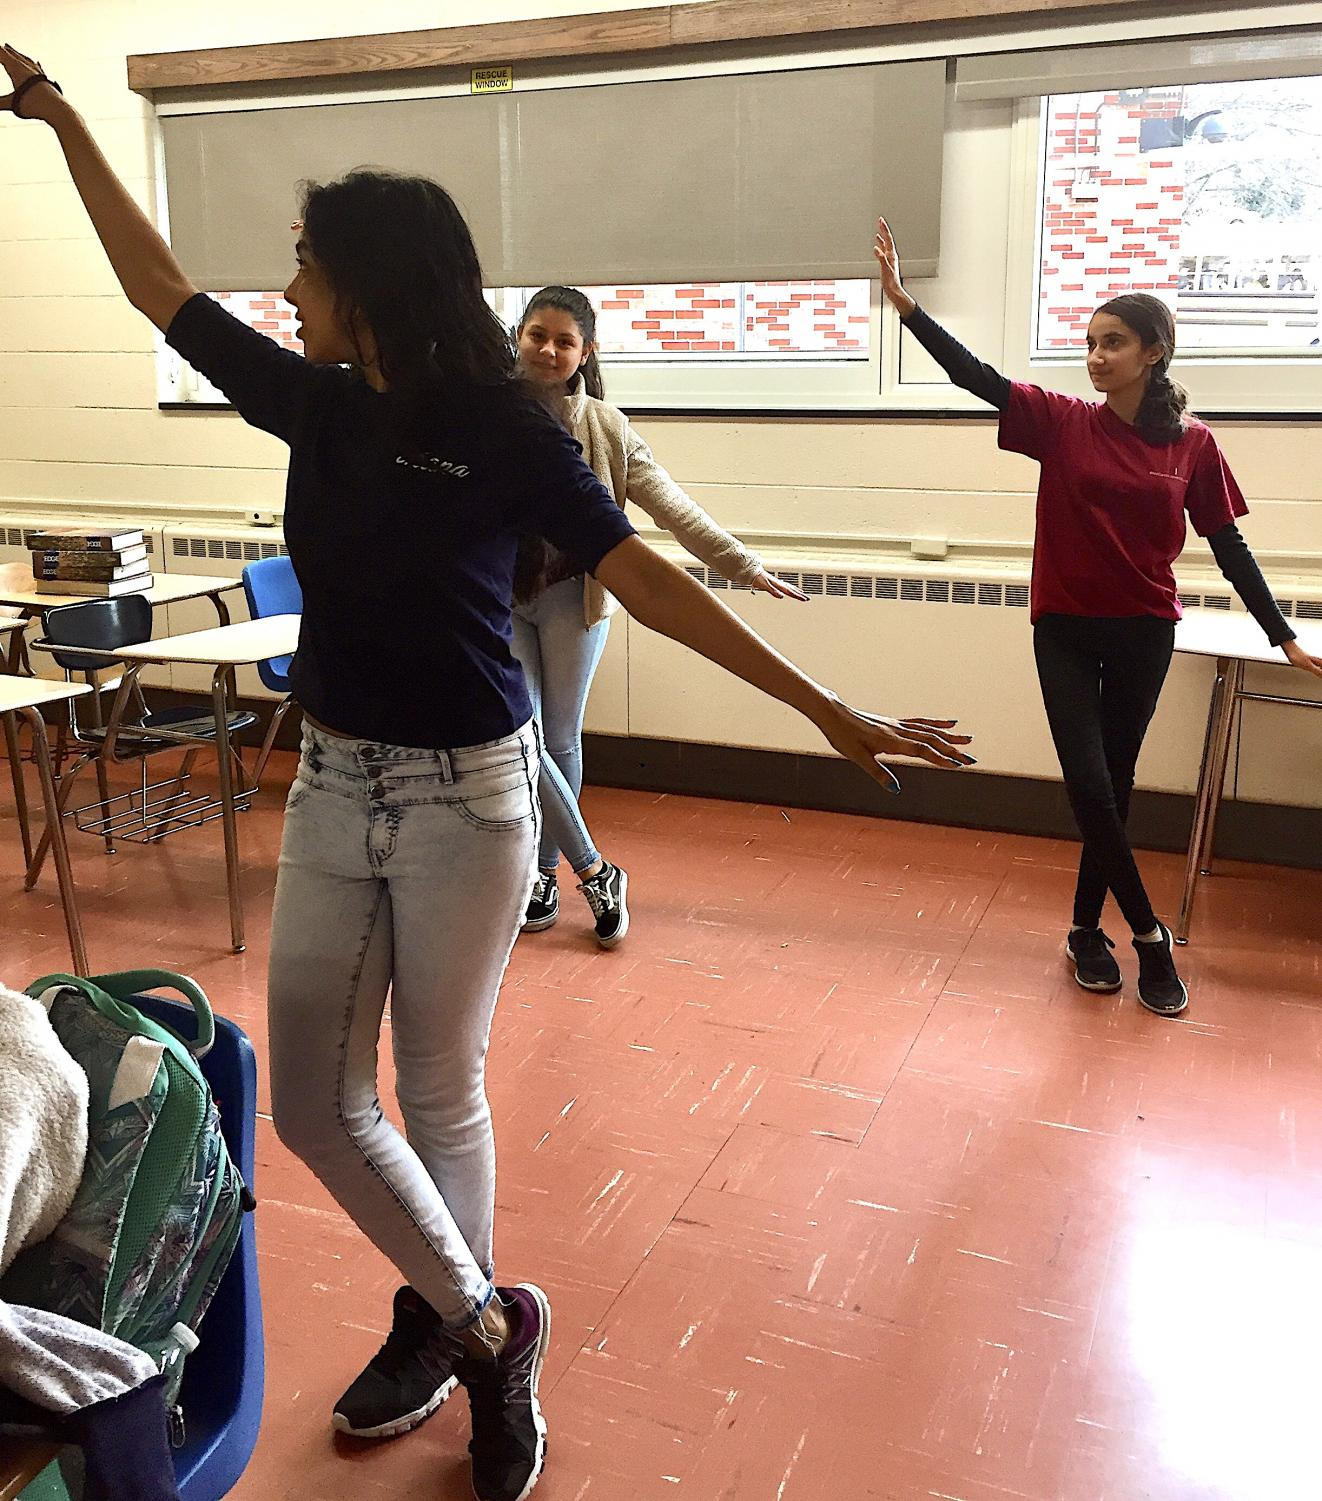 Bollywood Club president Aleena Jacob (foreground) instructs a dance routine during a recent club meeting. Members  Jennifer Alvarez and Hibba Quershi, both sophomores, follow her lead. The club meets every Friday in C 335.